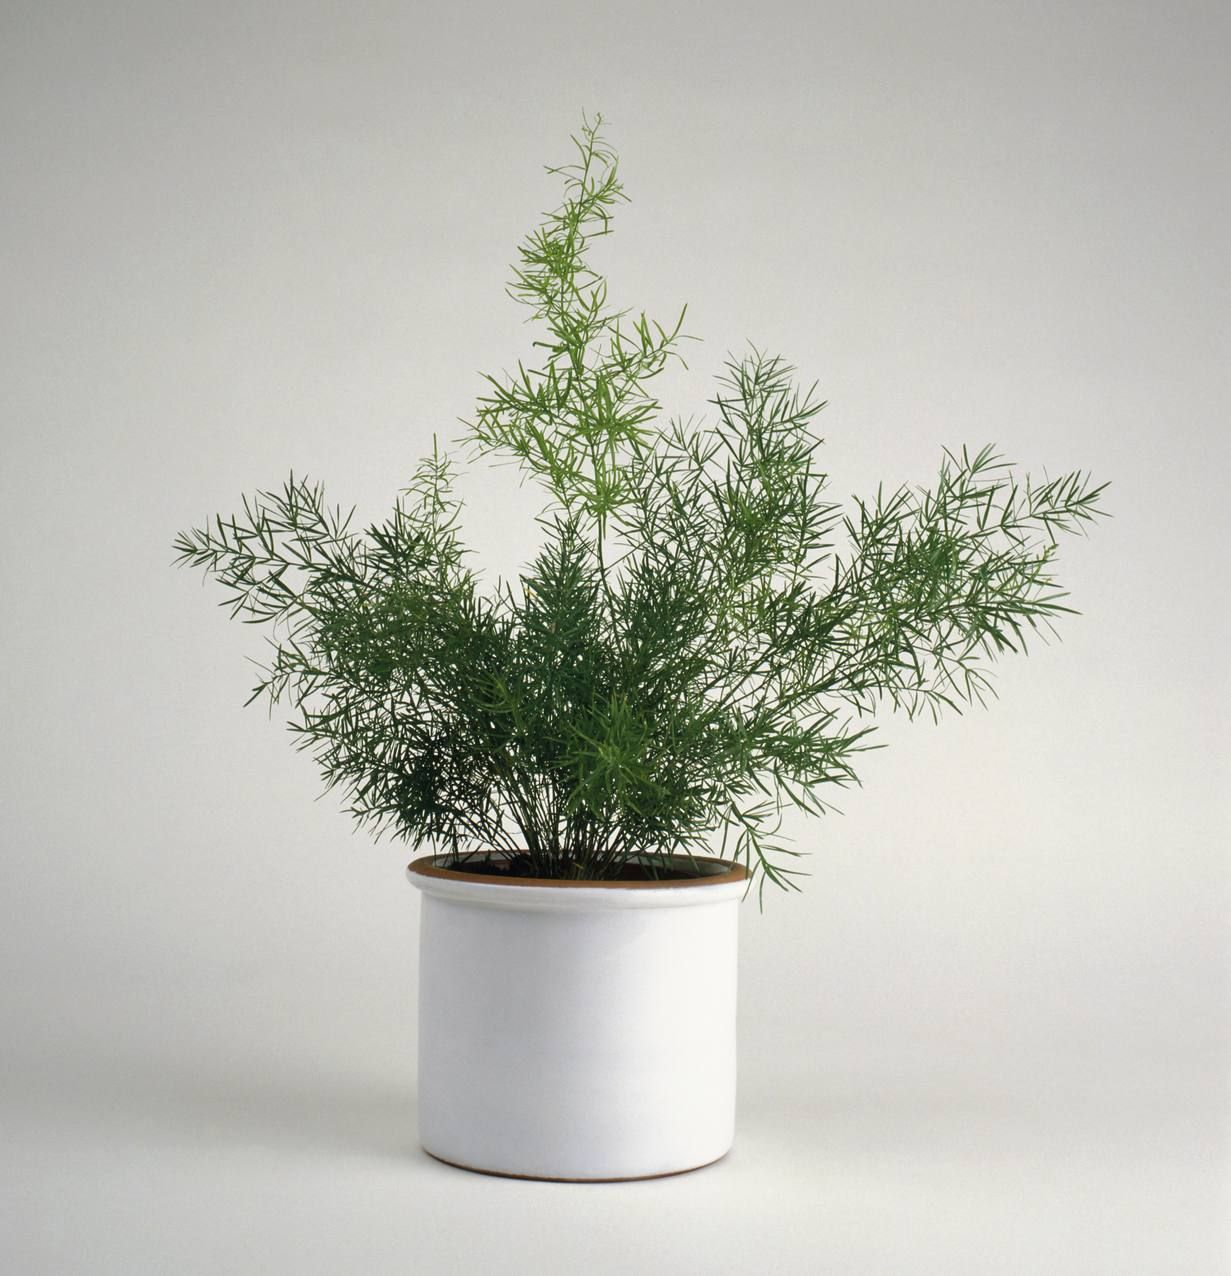 Dress Up Your Bathroom With These Moisture Loving Plants Asparagus Fern Plants White Flowering Plants